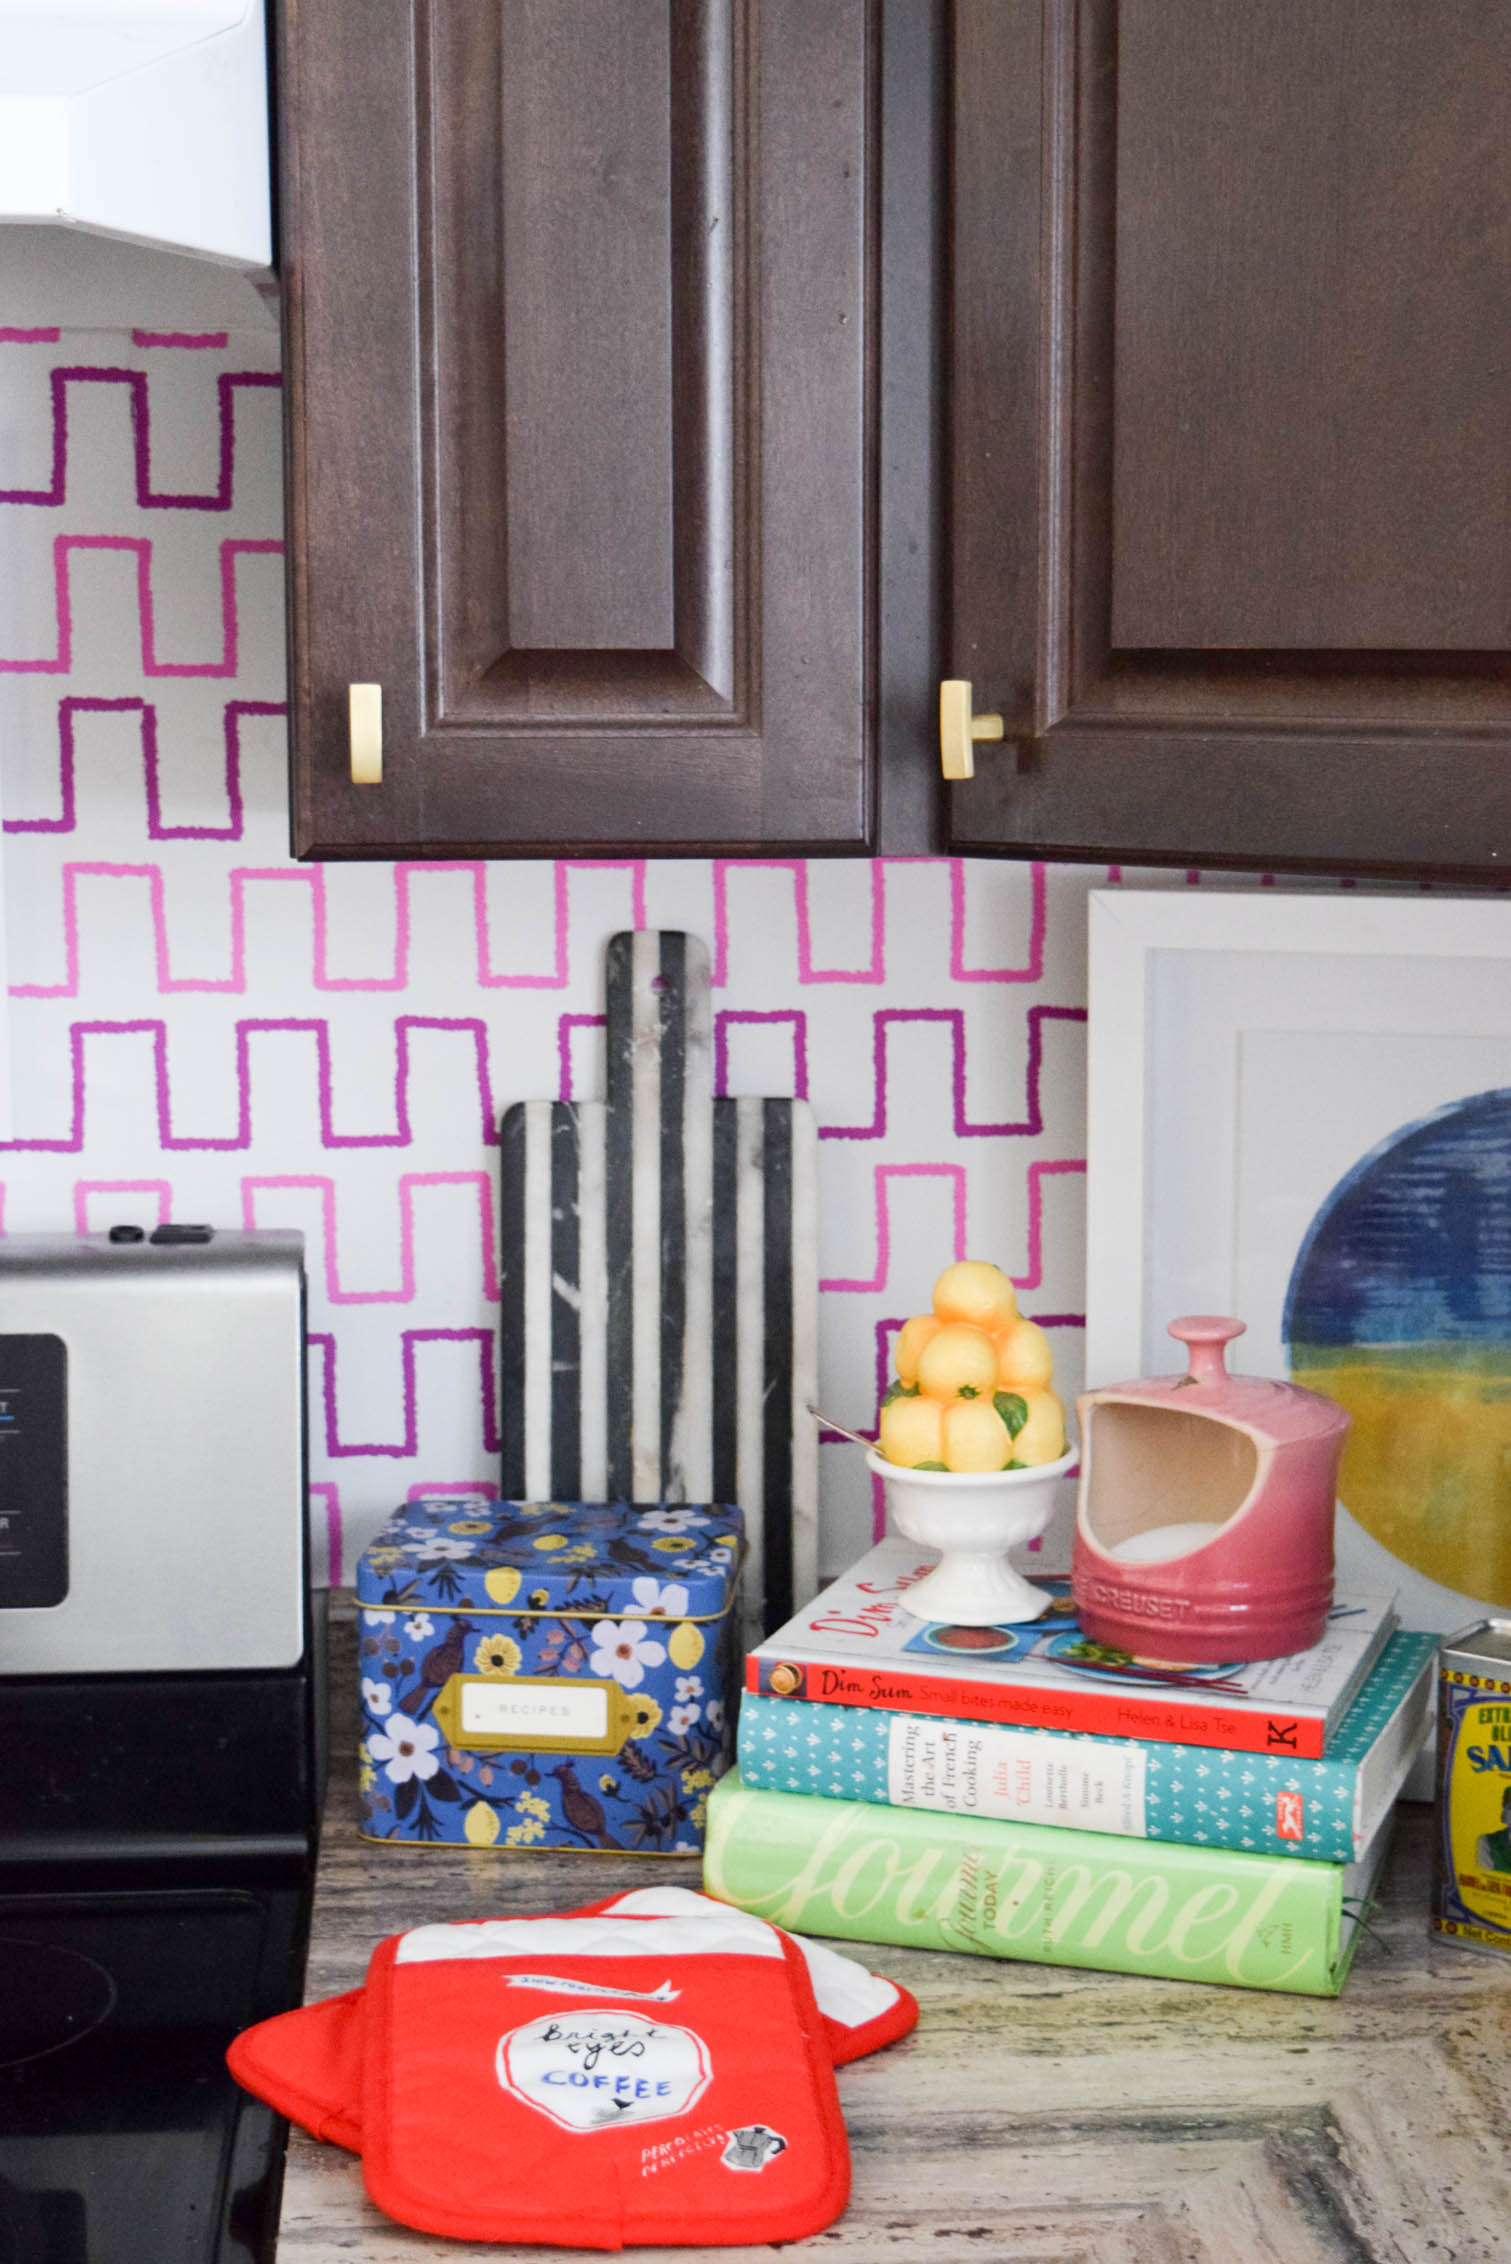 Life is too short to live with ugly rental kitchens. Fix it with a Removable Kitchen Wallpaper Backsplashusing a vibrant pattern from Spoonflower. All you need to get started are the measurements of your space, and the pattern you want! #wallpaper #removablewallpaper #backsplash #renterfriendly #kitchenupgrades